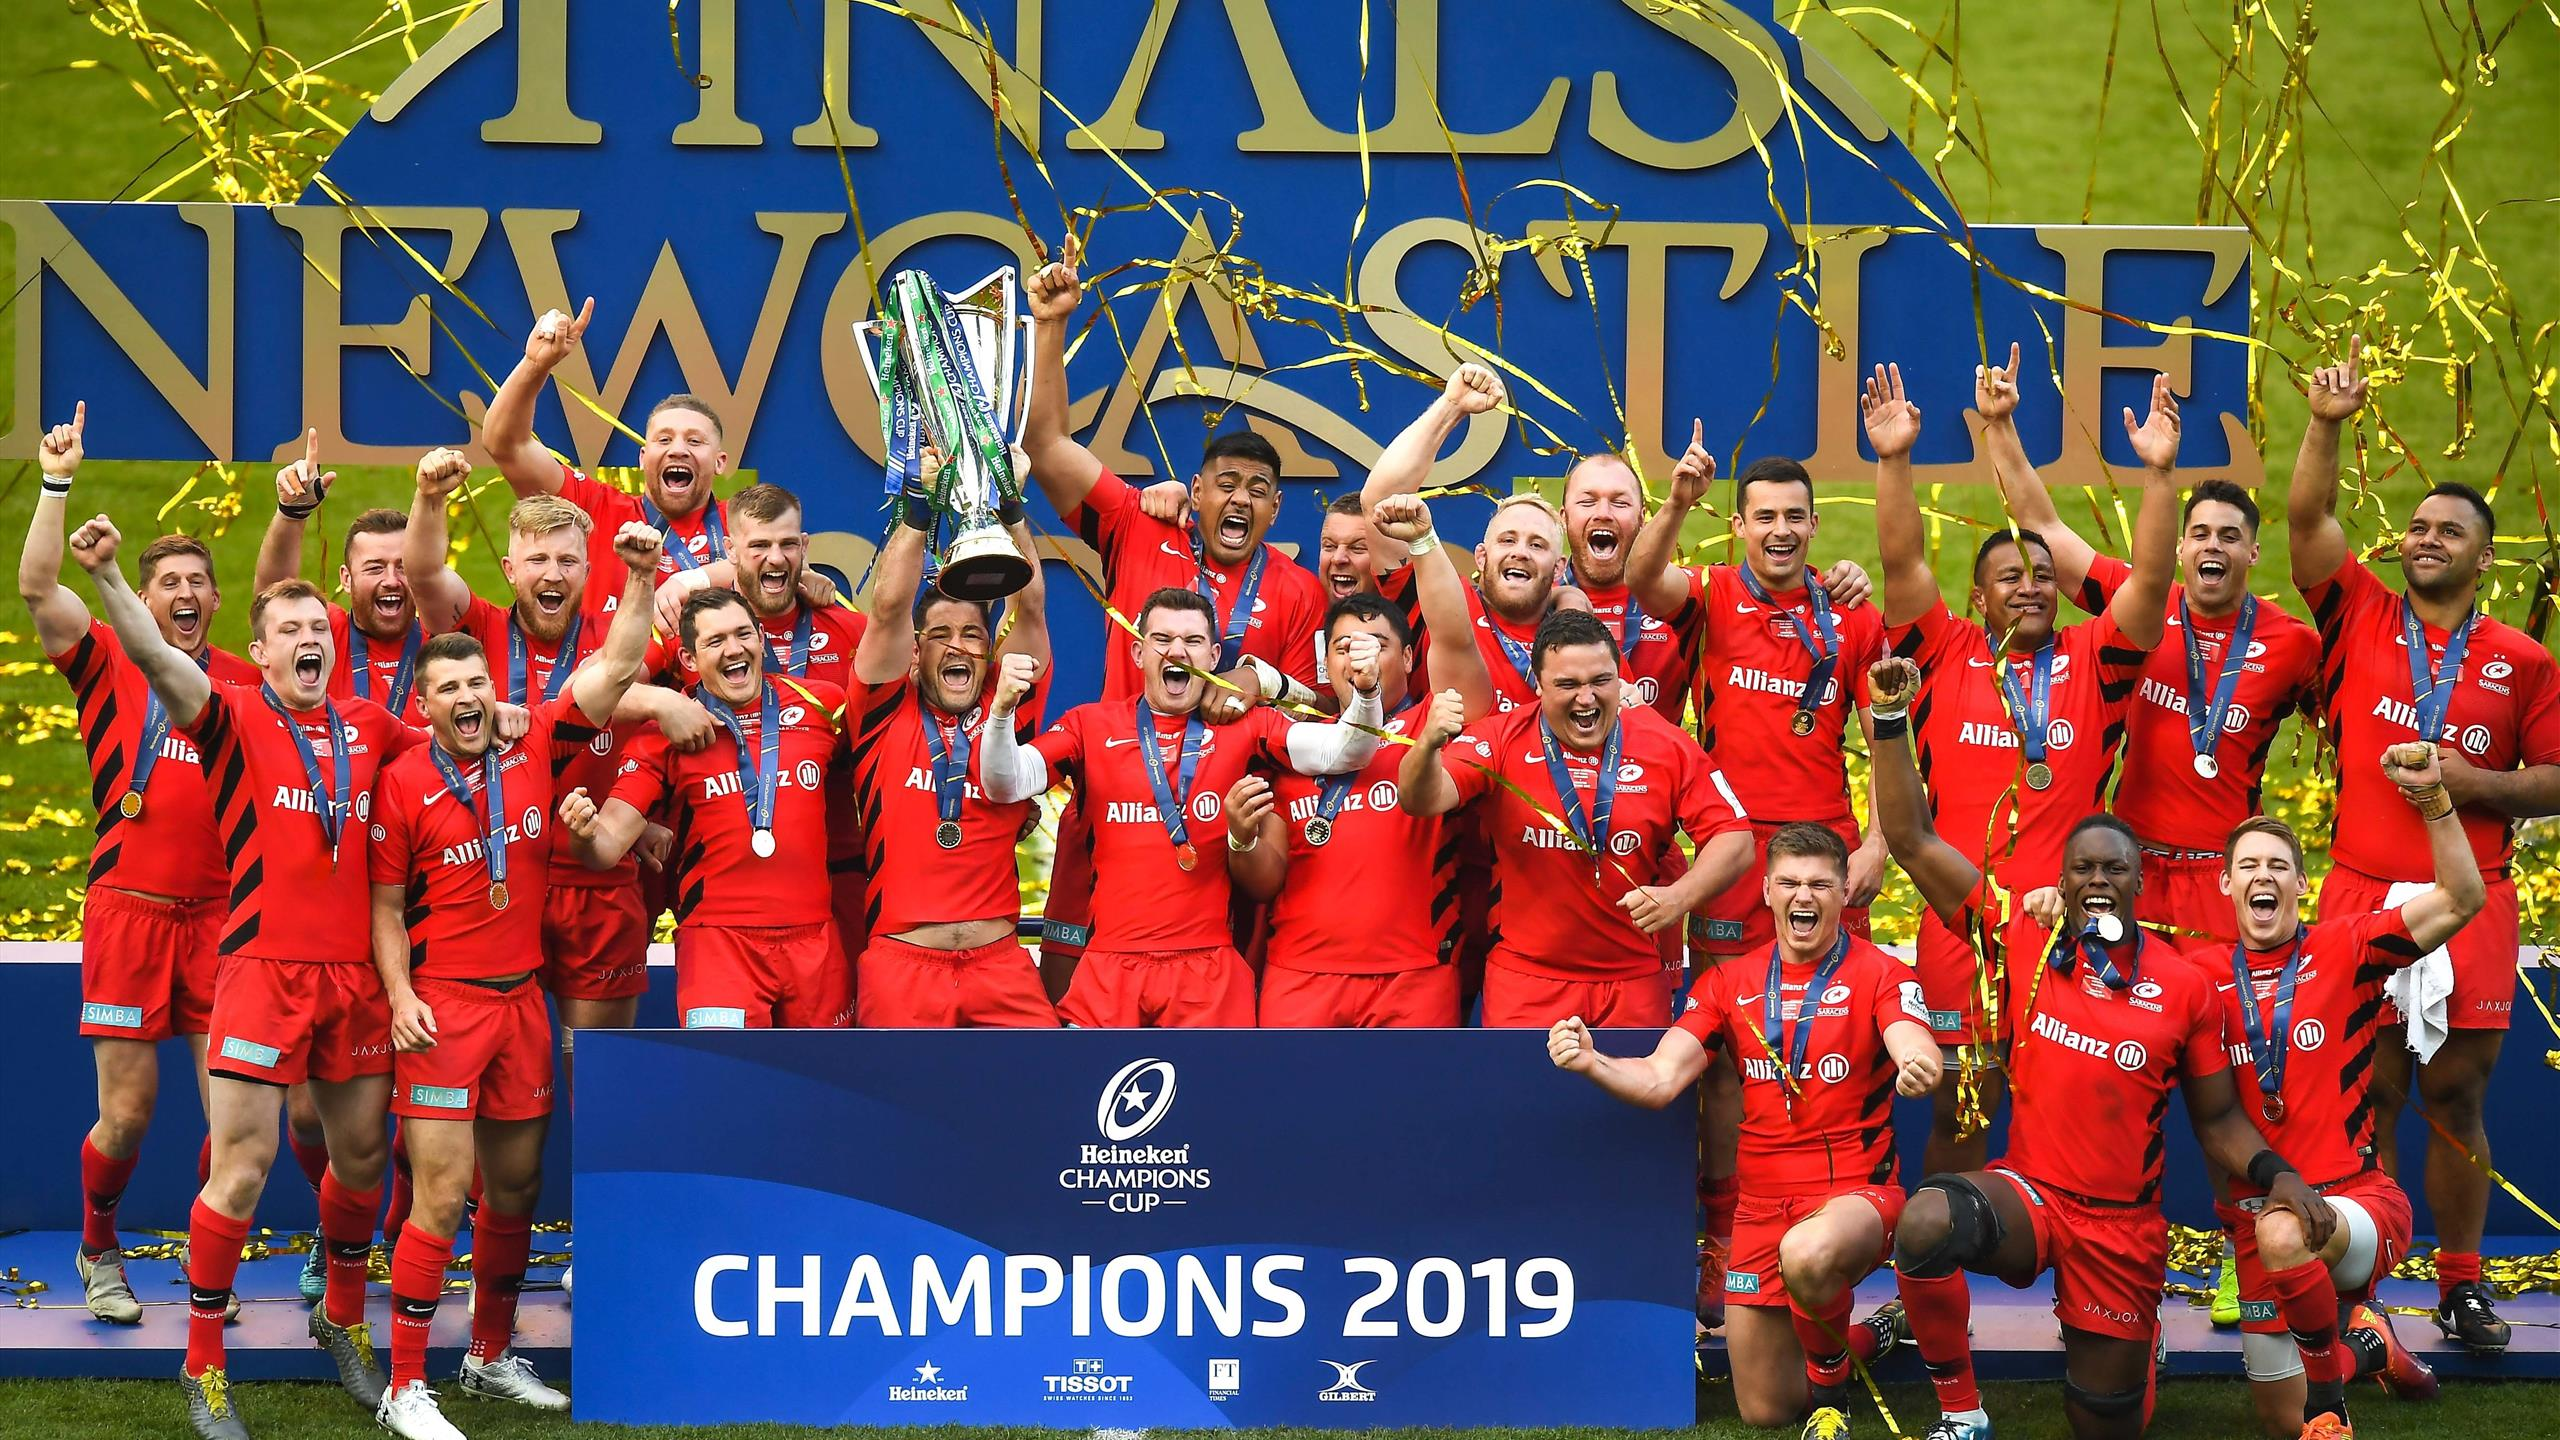 Calendrier Champions Cup 2019.Champions Cup Le Calendrier Devoile Champions Cup 2018